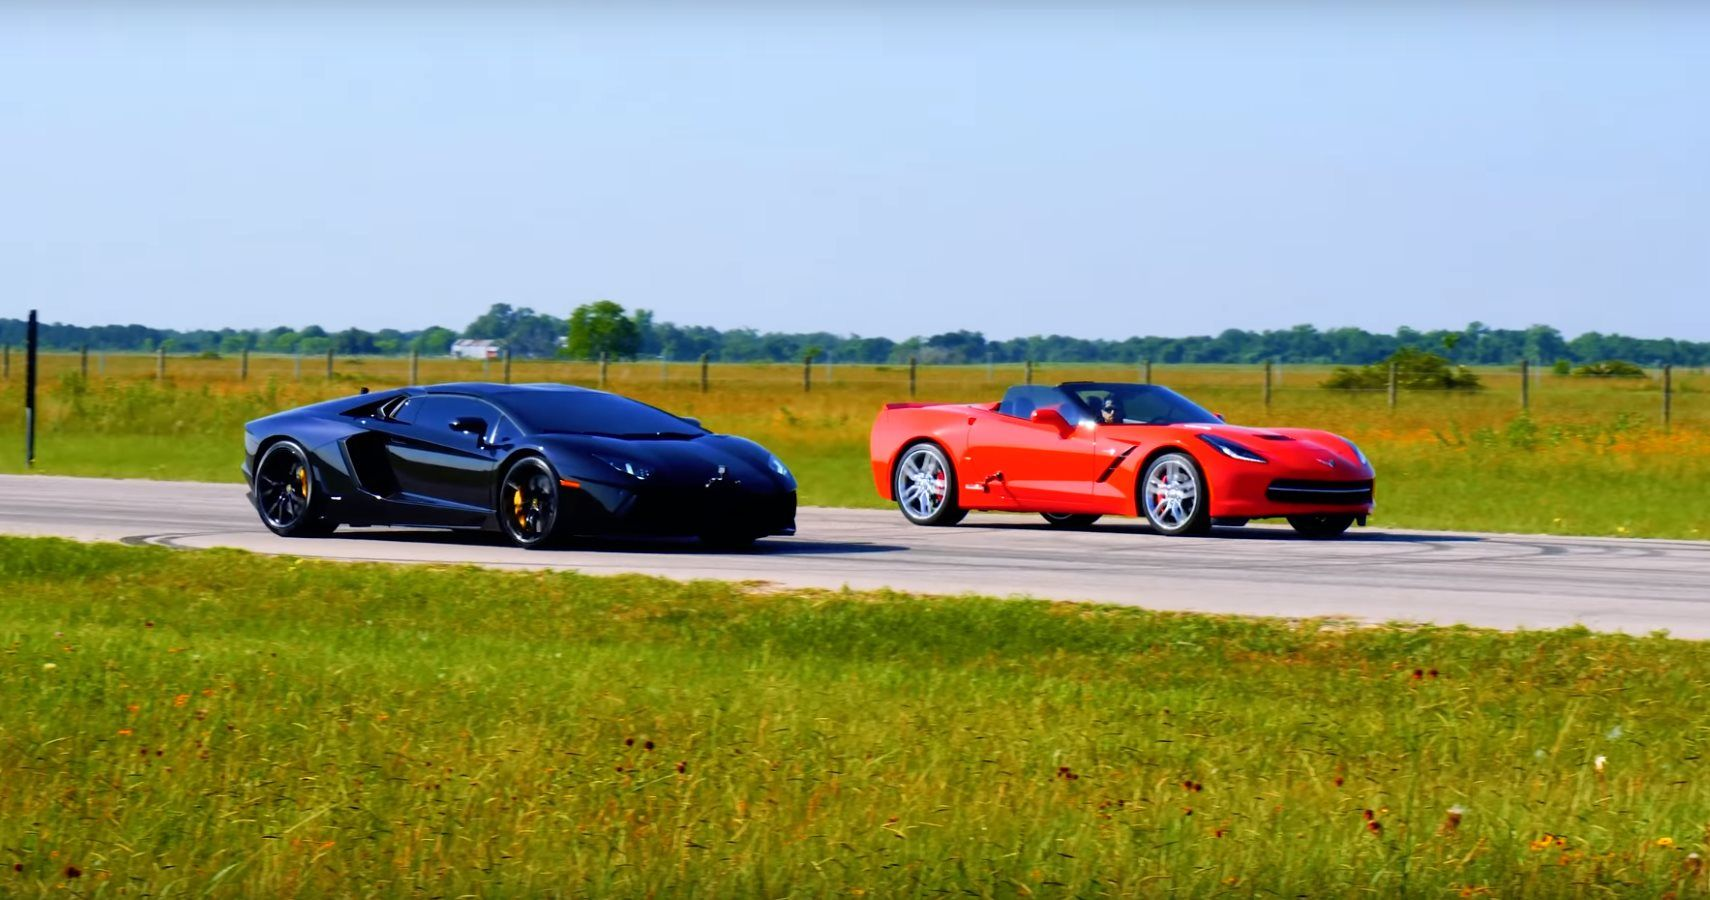 Hennessey Races Their 750 HP Corvette Upgrade Against A